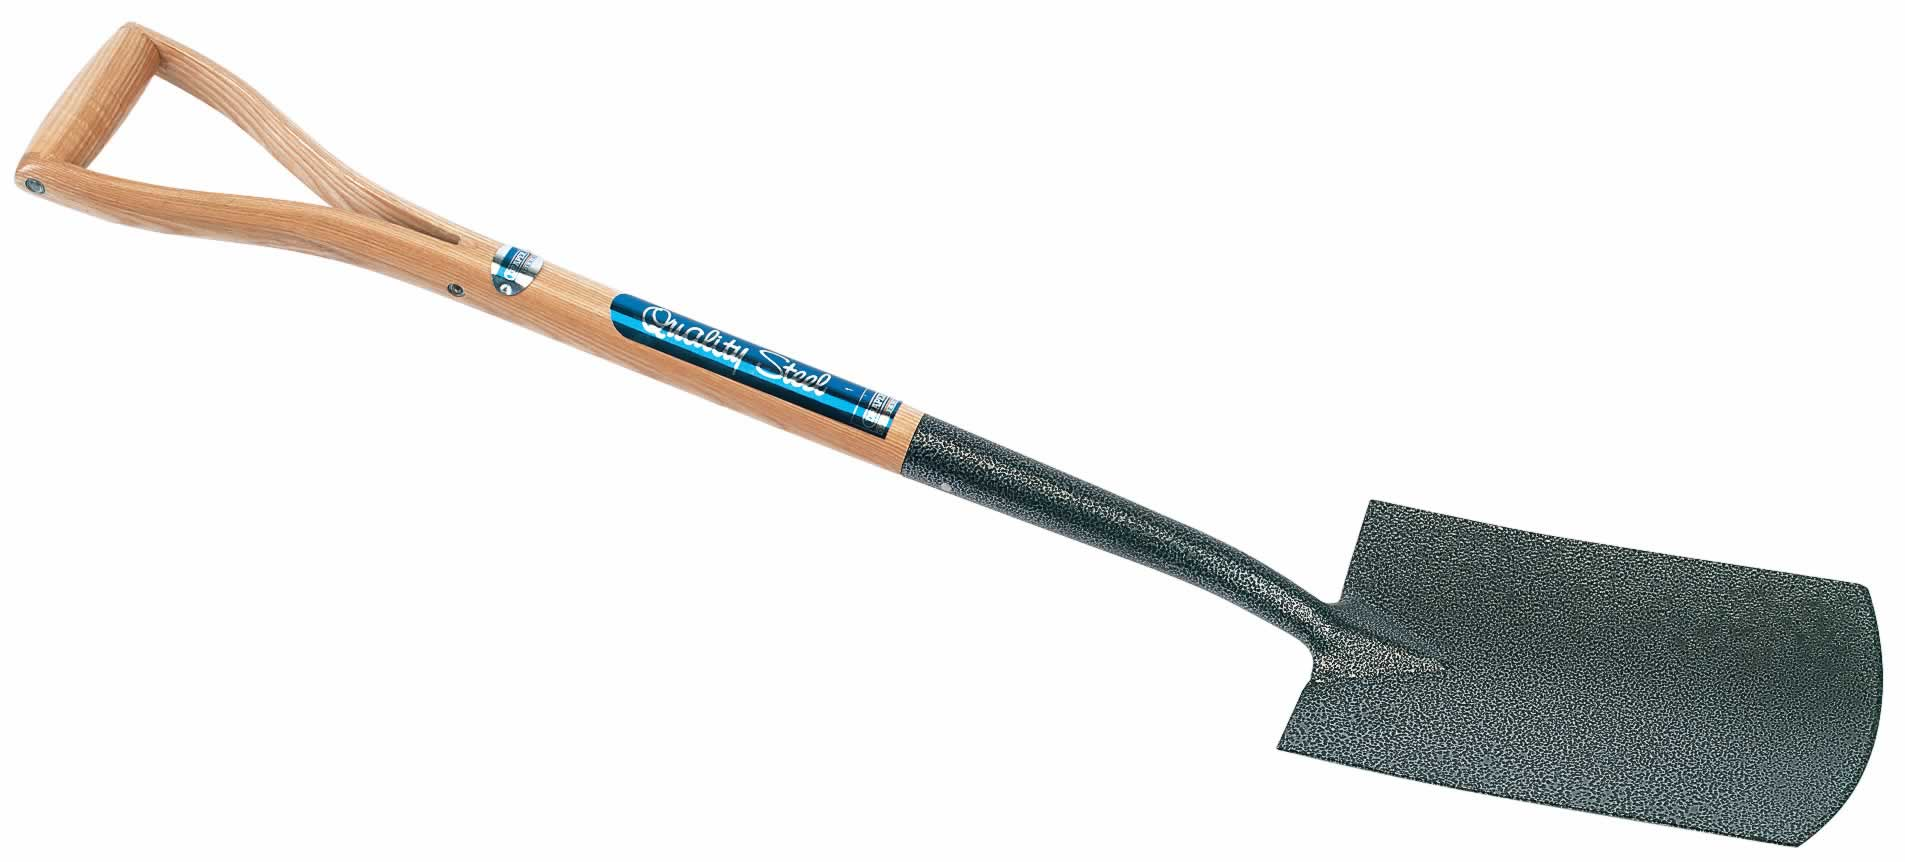 List Of Landscaping Tools And Equipment : Gardening tools list add to wish